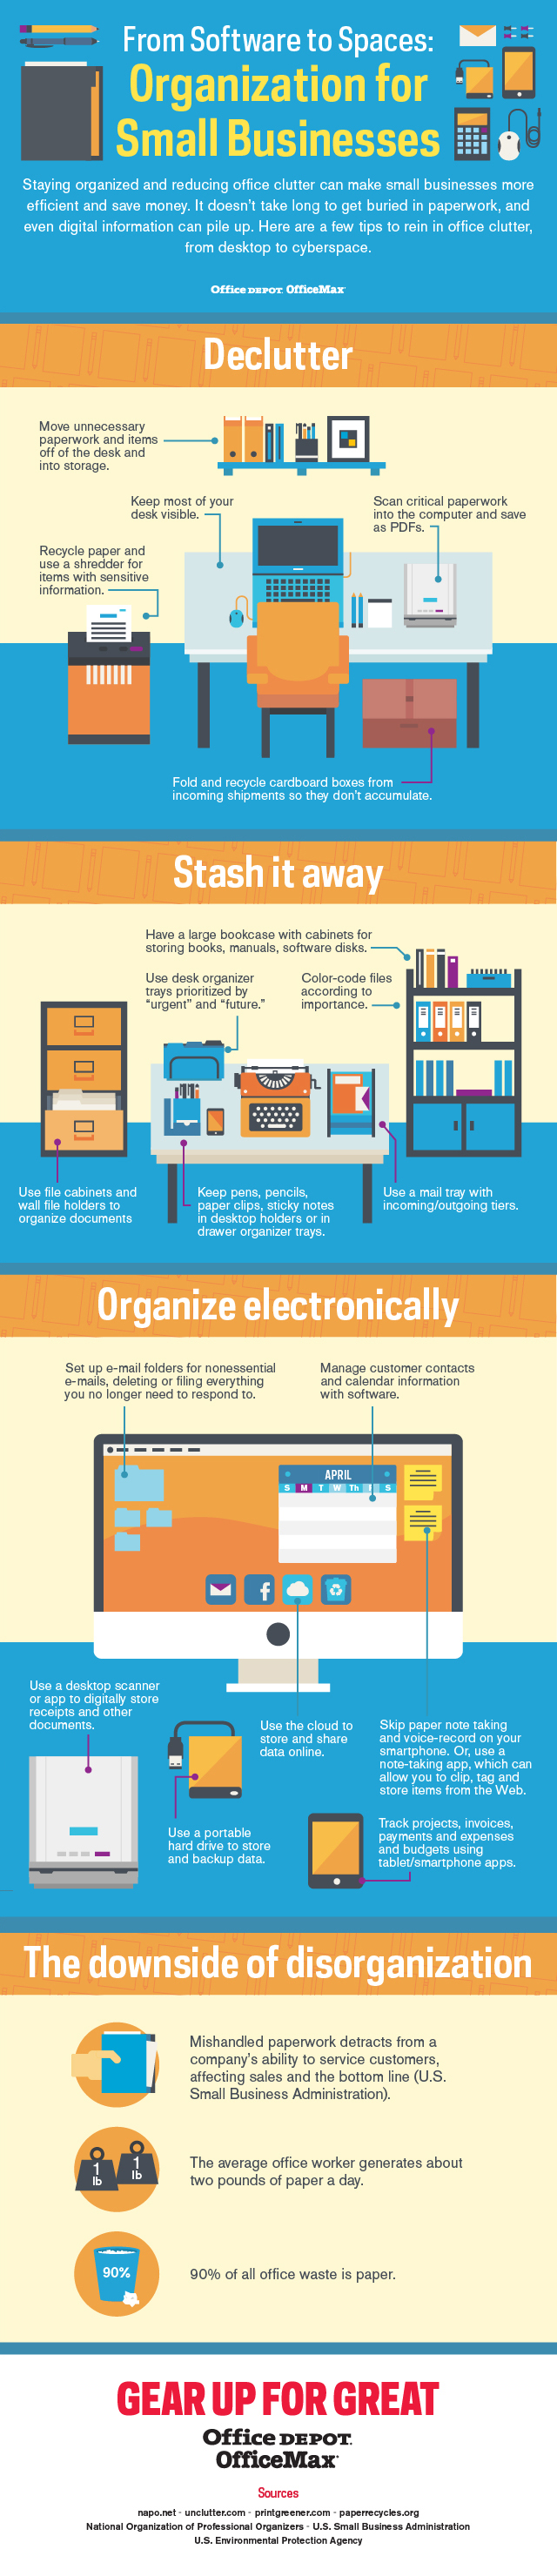 From Software to Spaces Organization for Small Businesses Infographic